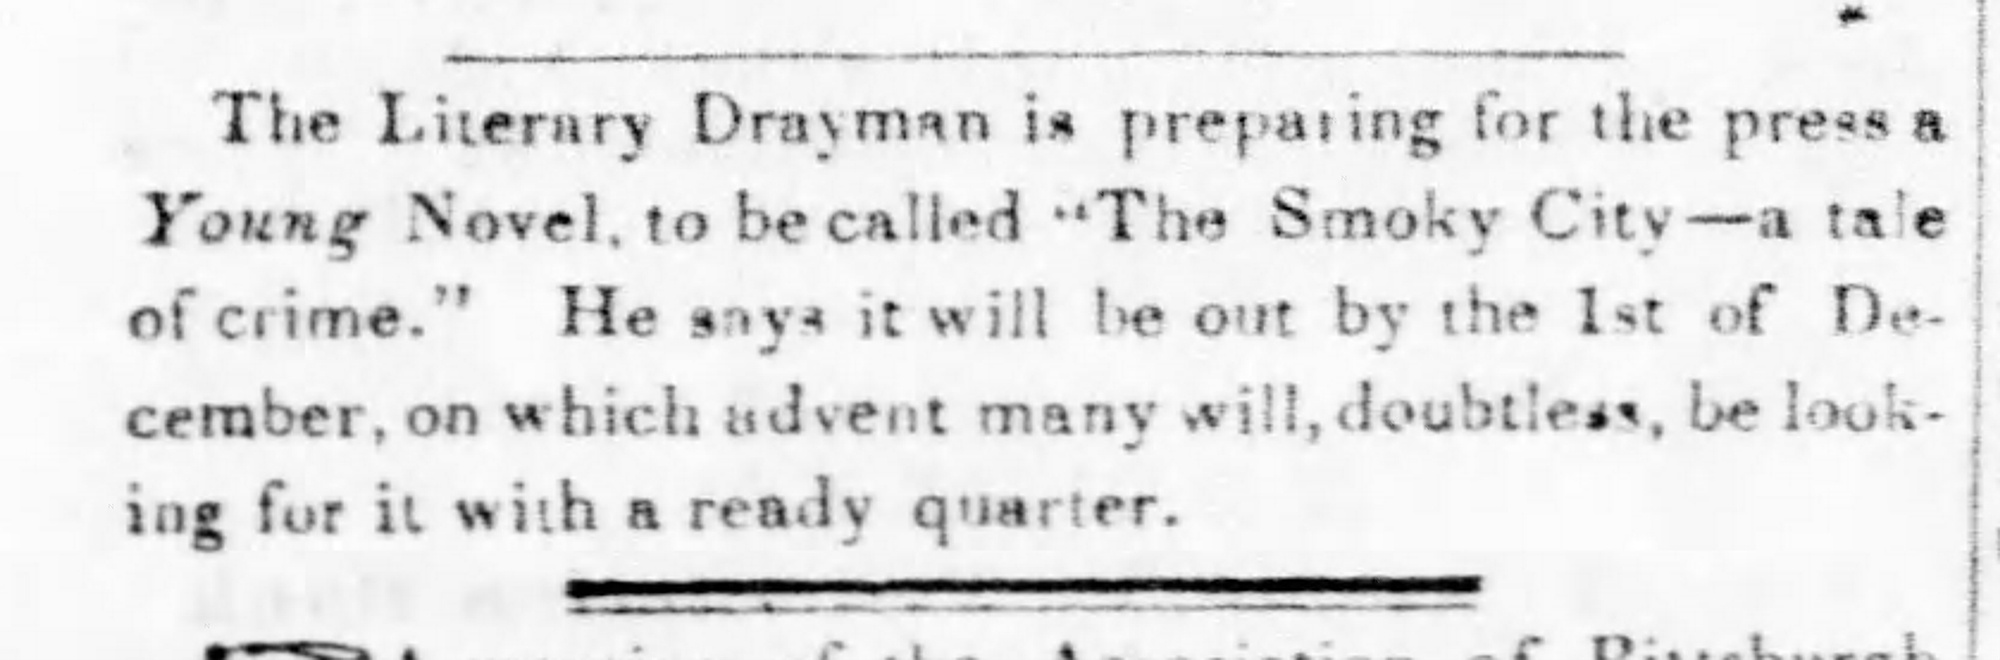 Notice of the Literary Drayman's new crime novel, 1845. Pittsburgh Daily Post, October 16, 1845.